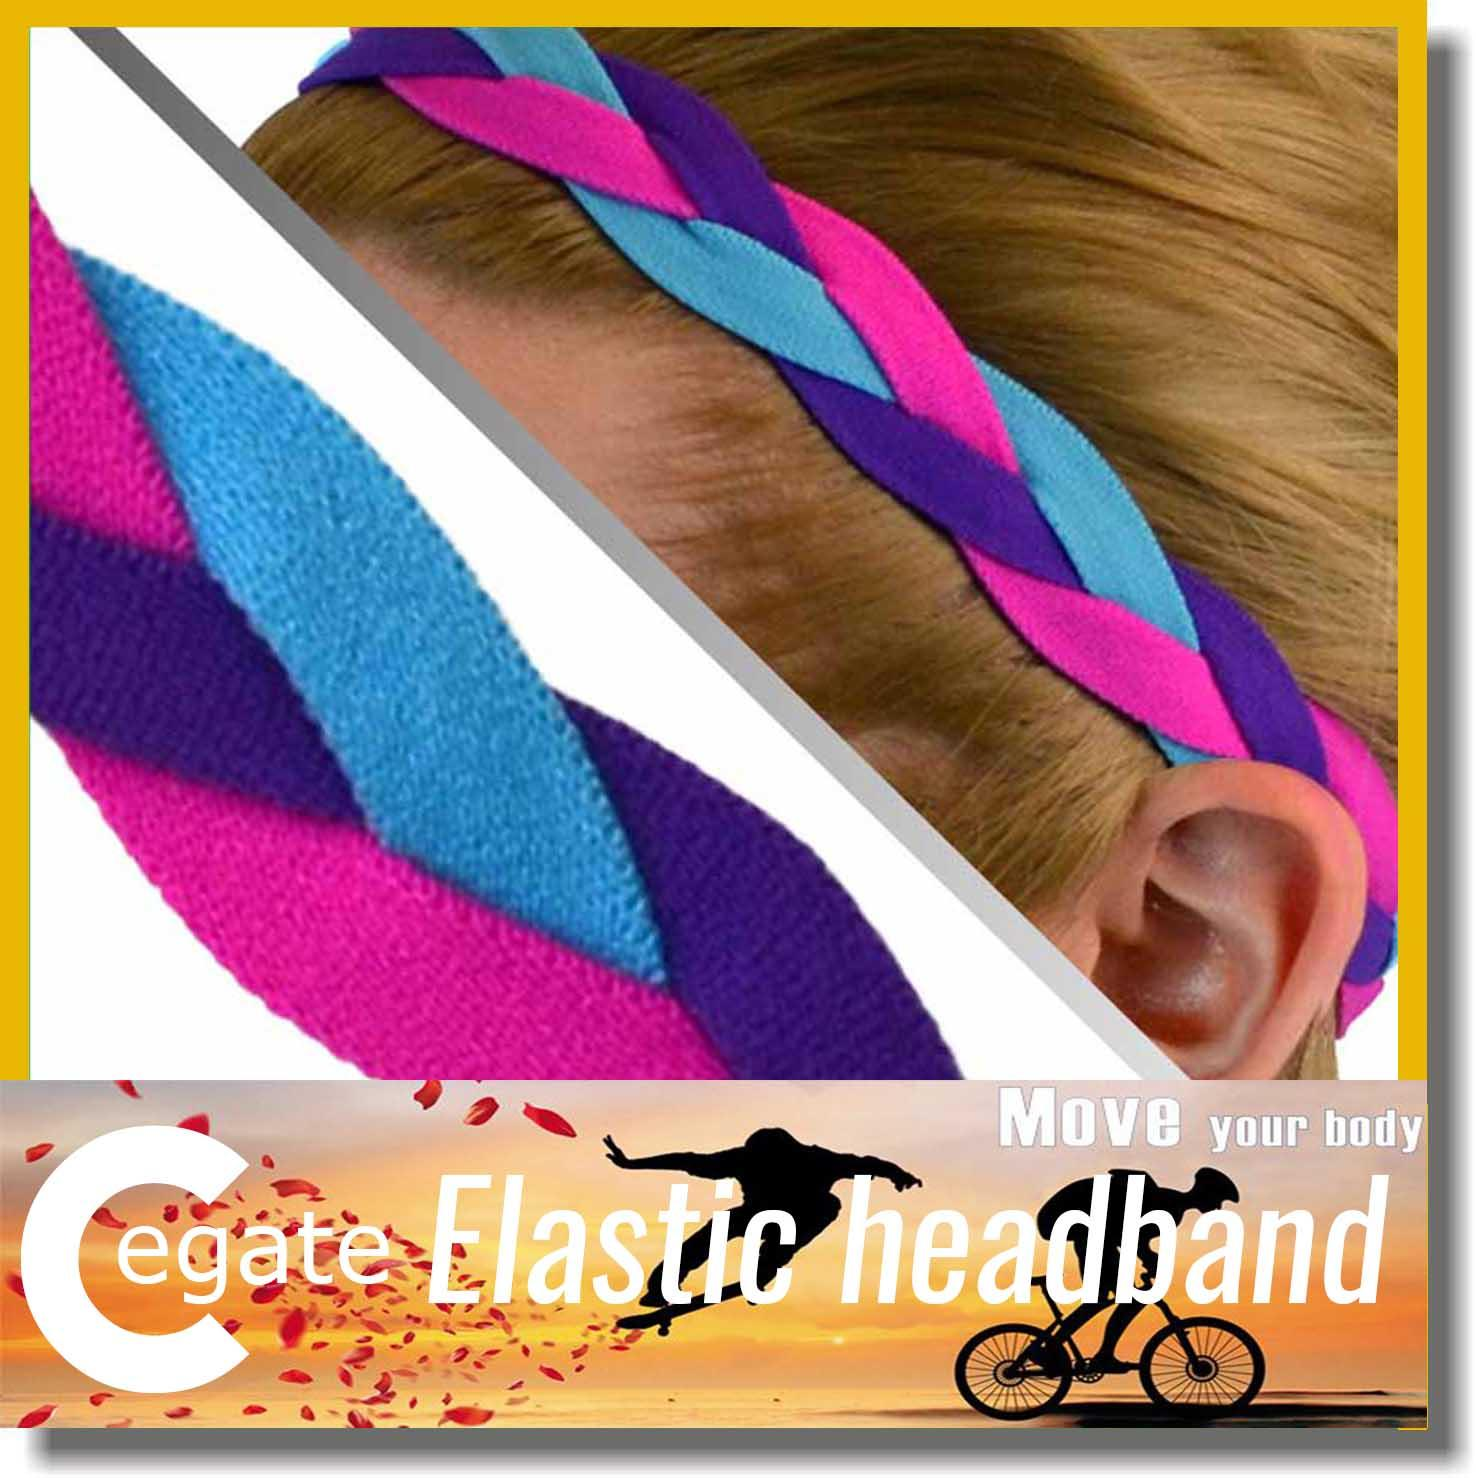 Wholesale 100 pieces lot Color Triple Braided Headband with Non slip grip for Softball